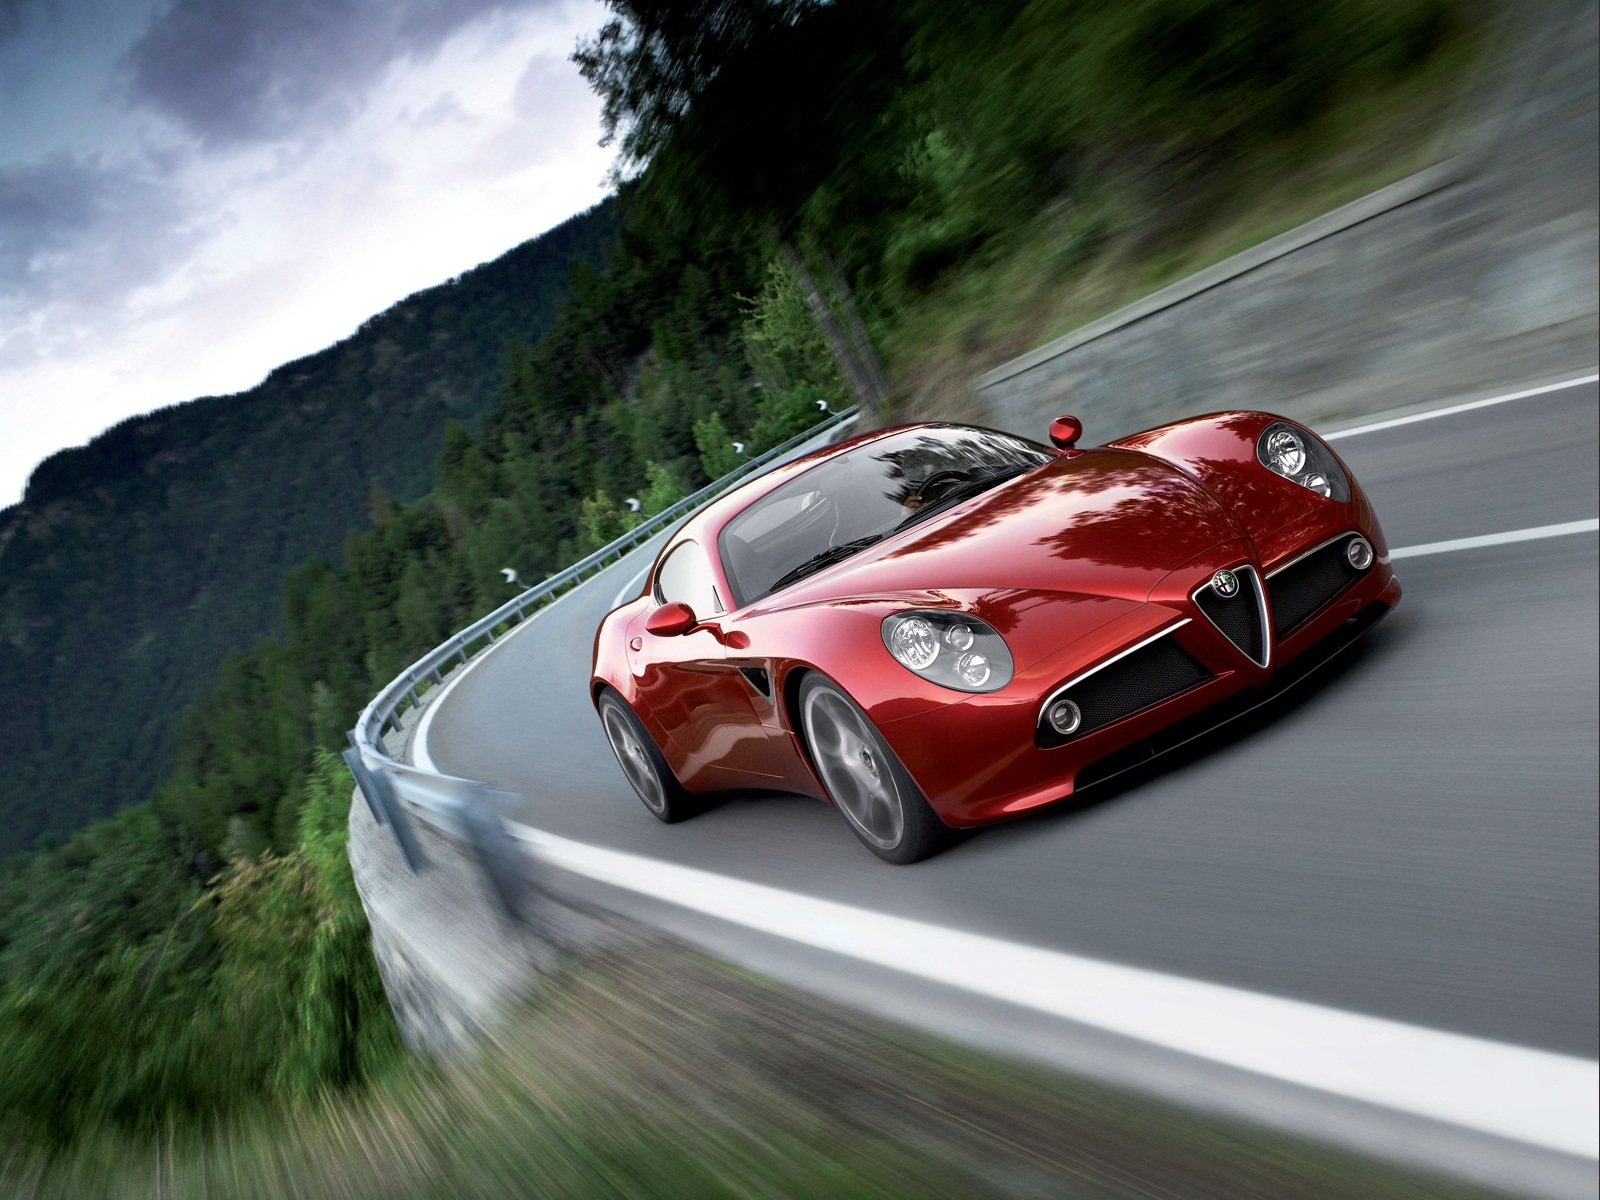 The 8C Competizione is far and away the best looking Alfa of recent times